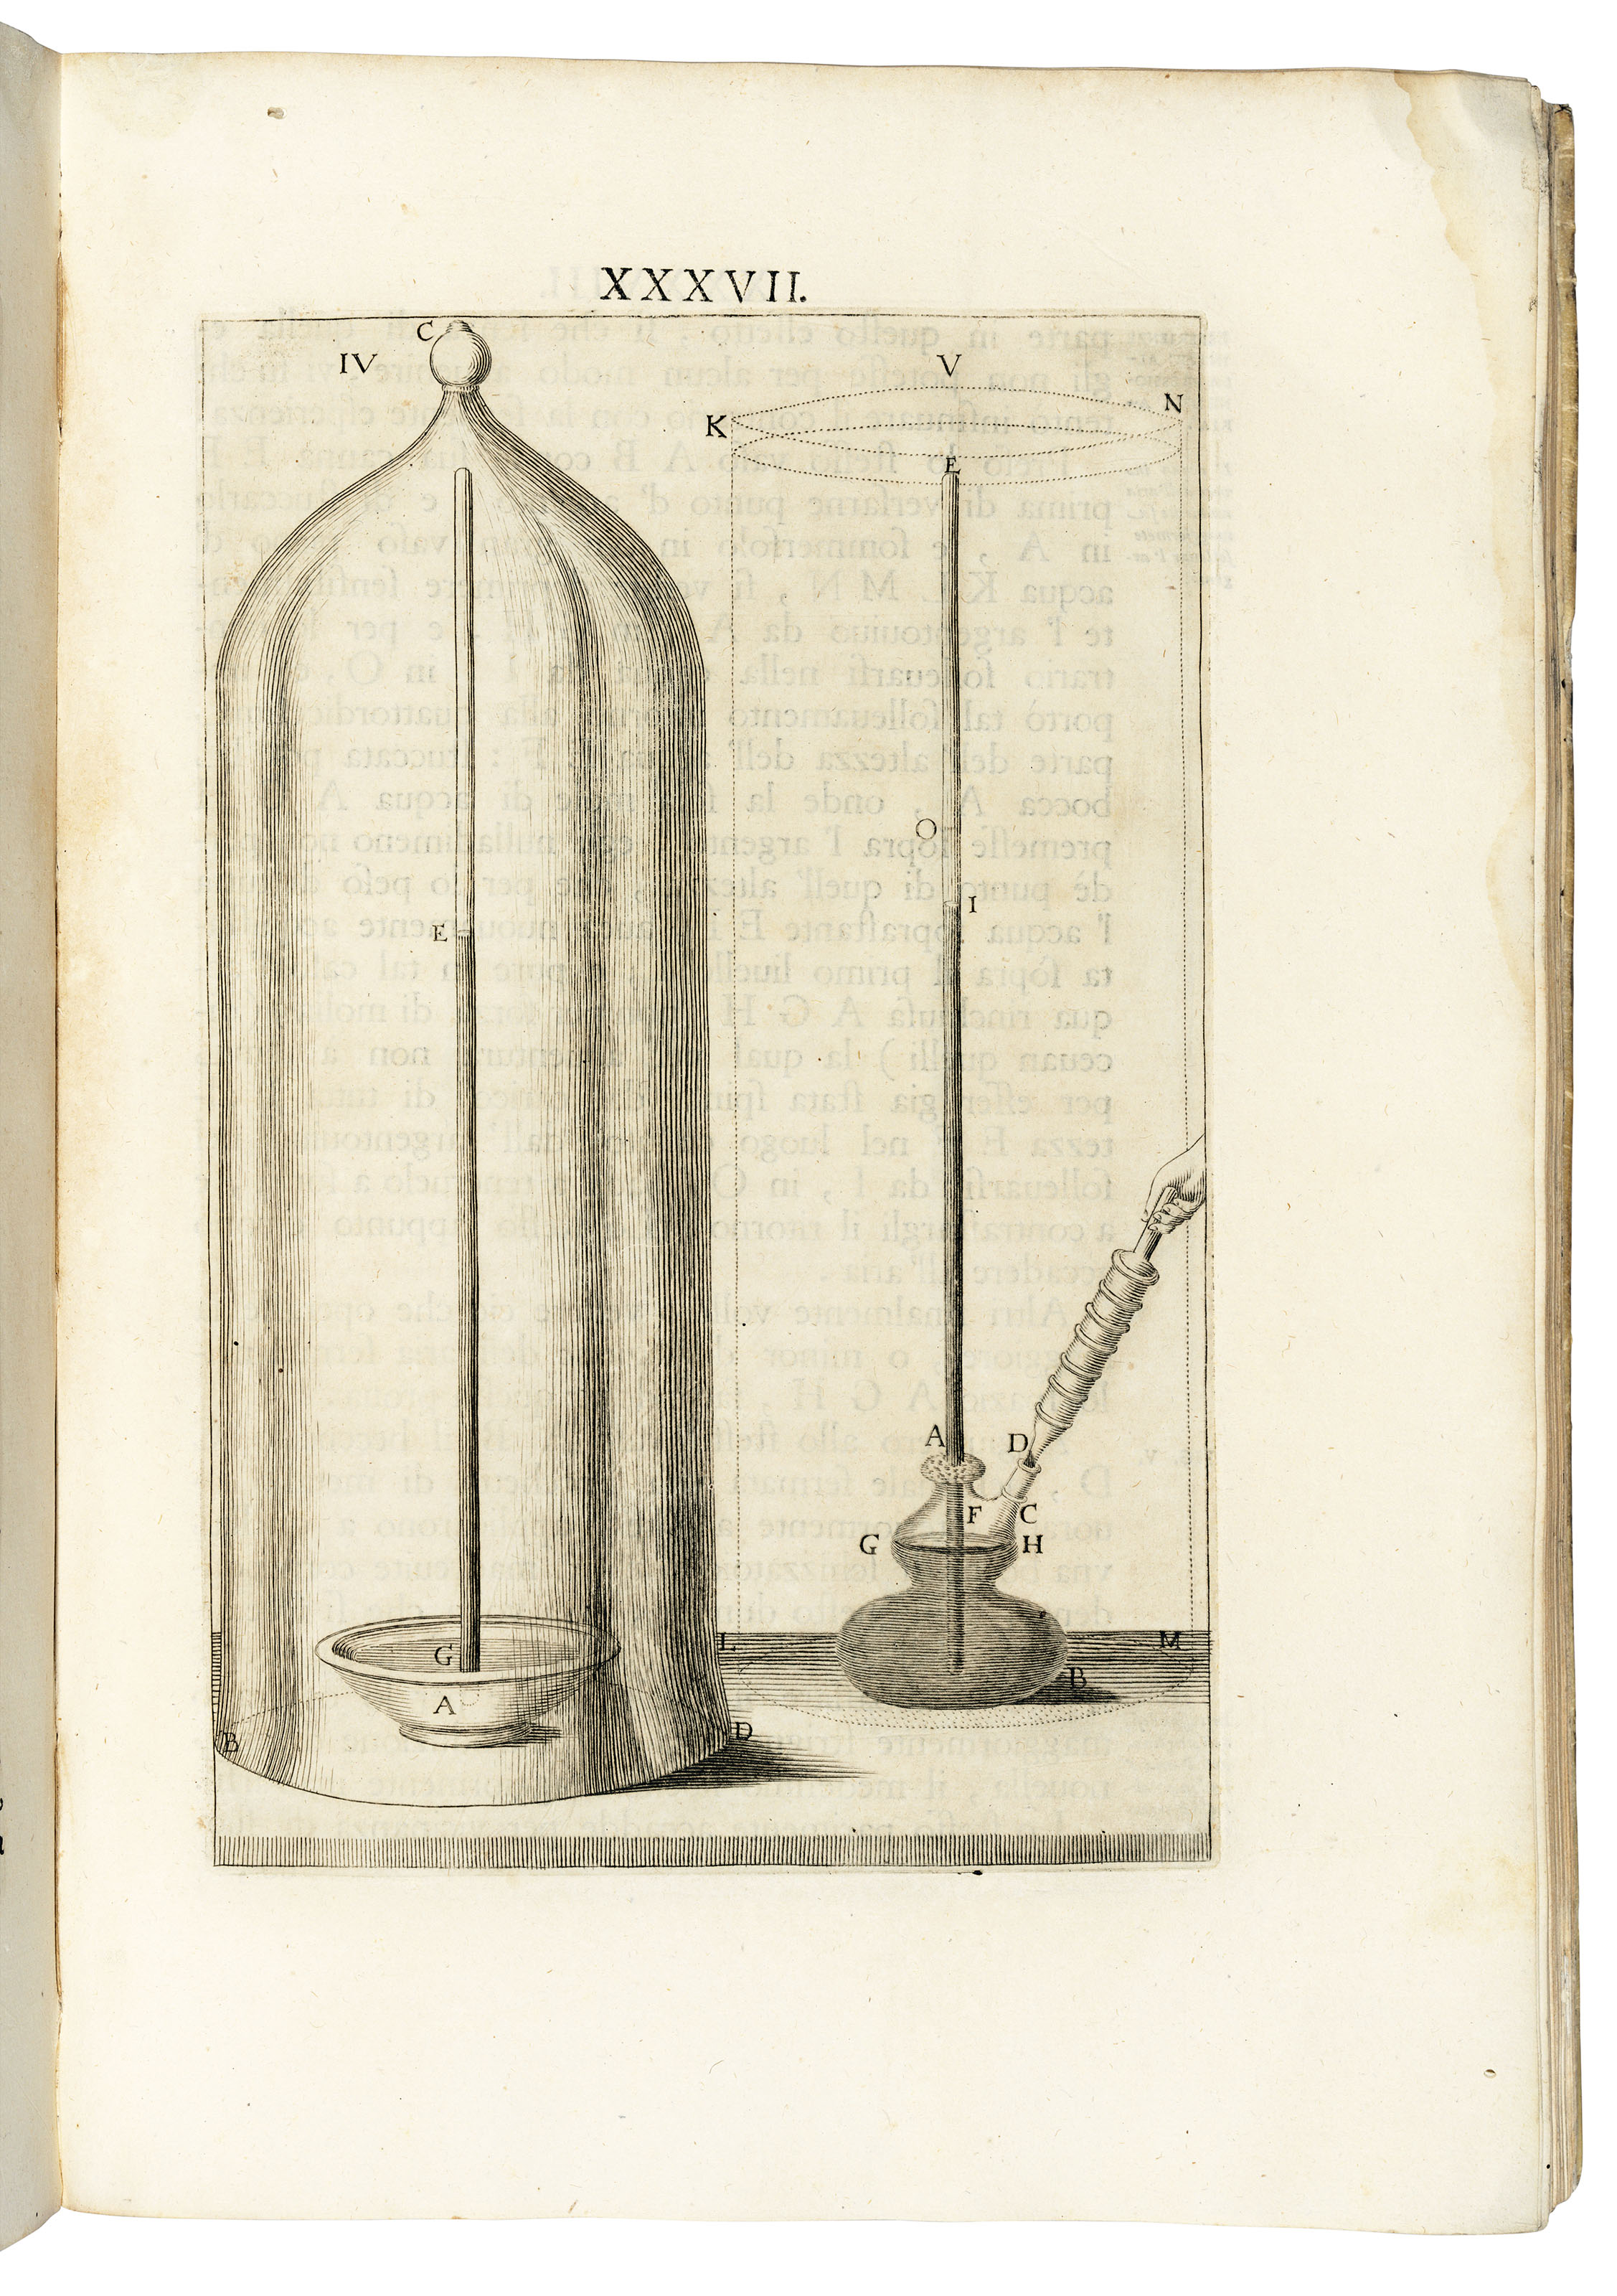 Important Scientific Books from the Collection of Peter and Margarethe Braune